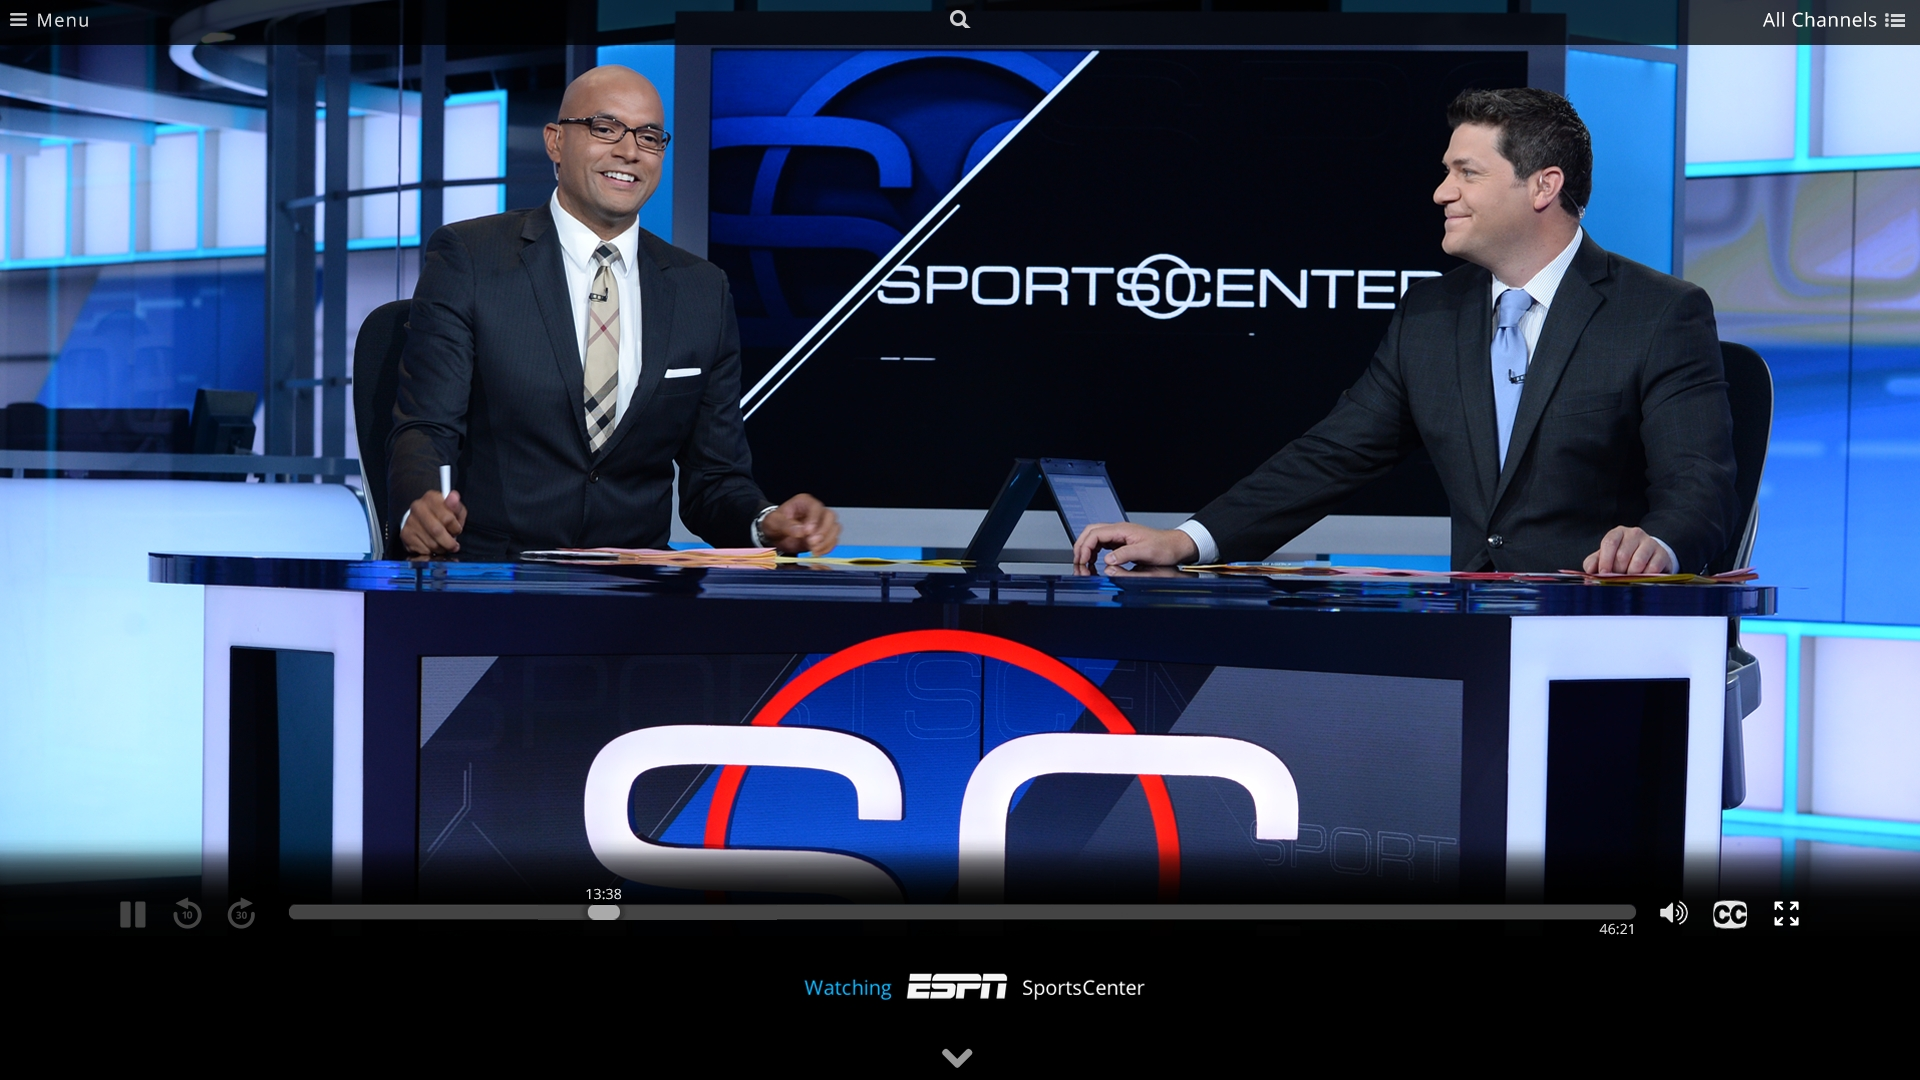 Internet television has arrived: Why Sling TV marks the